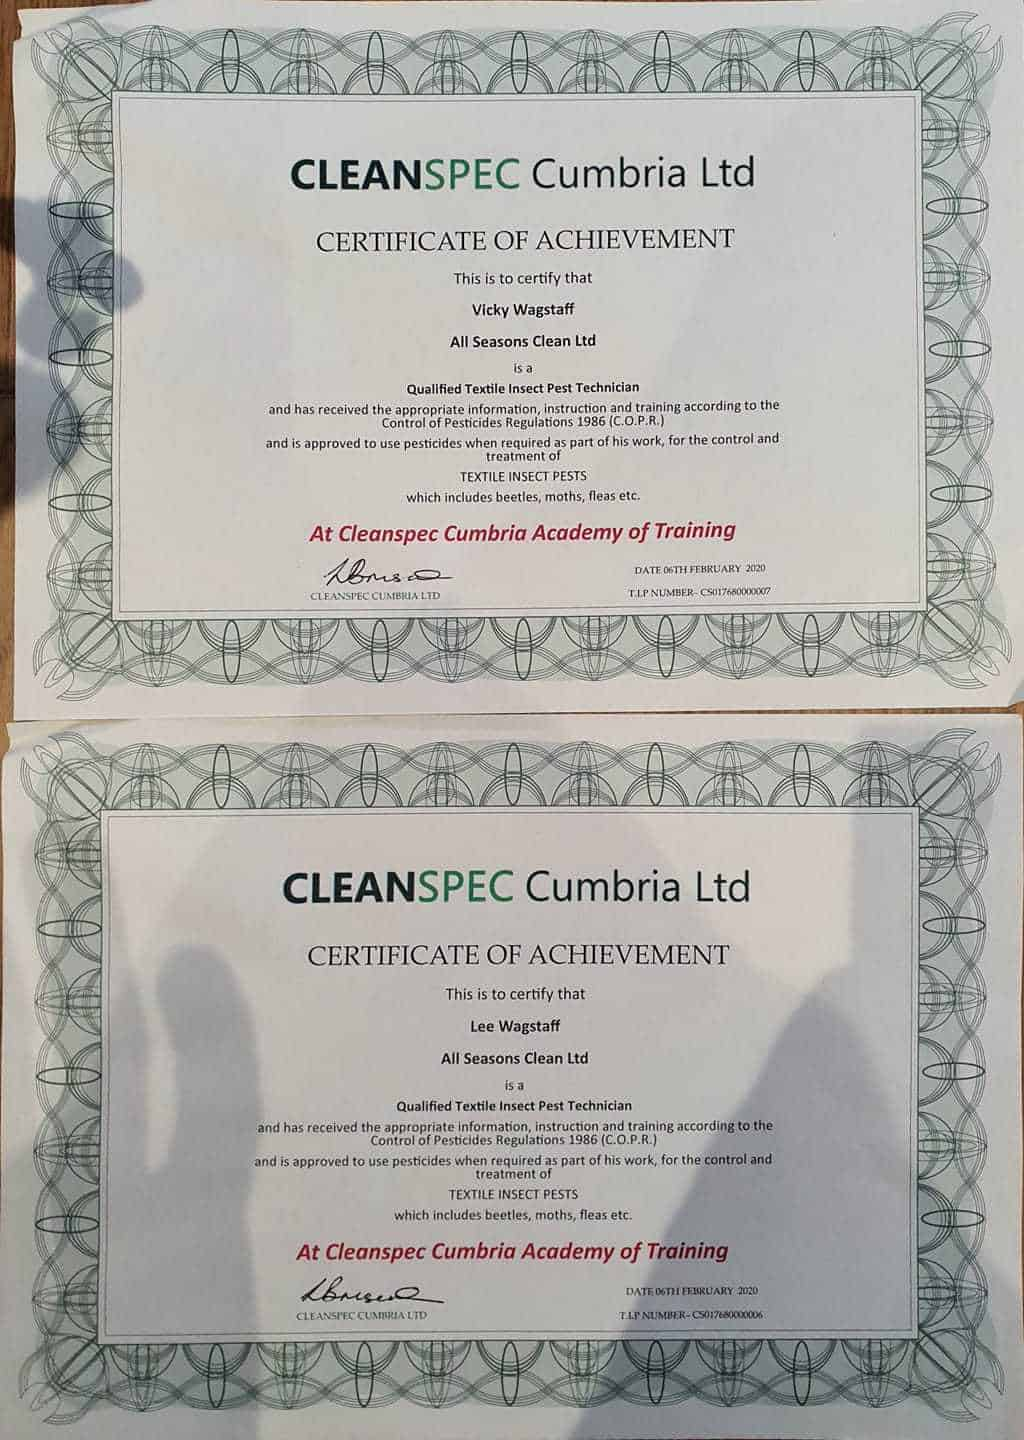 Qualified Textile Insect Pest Technician